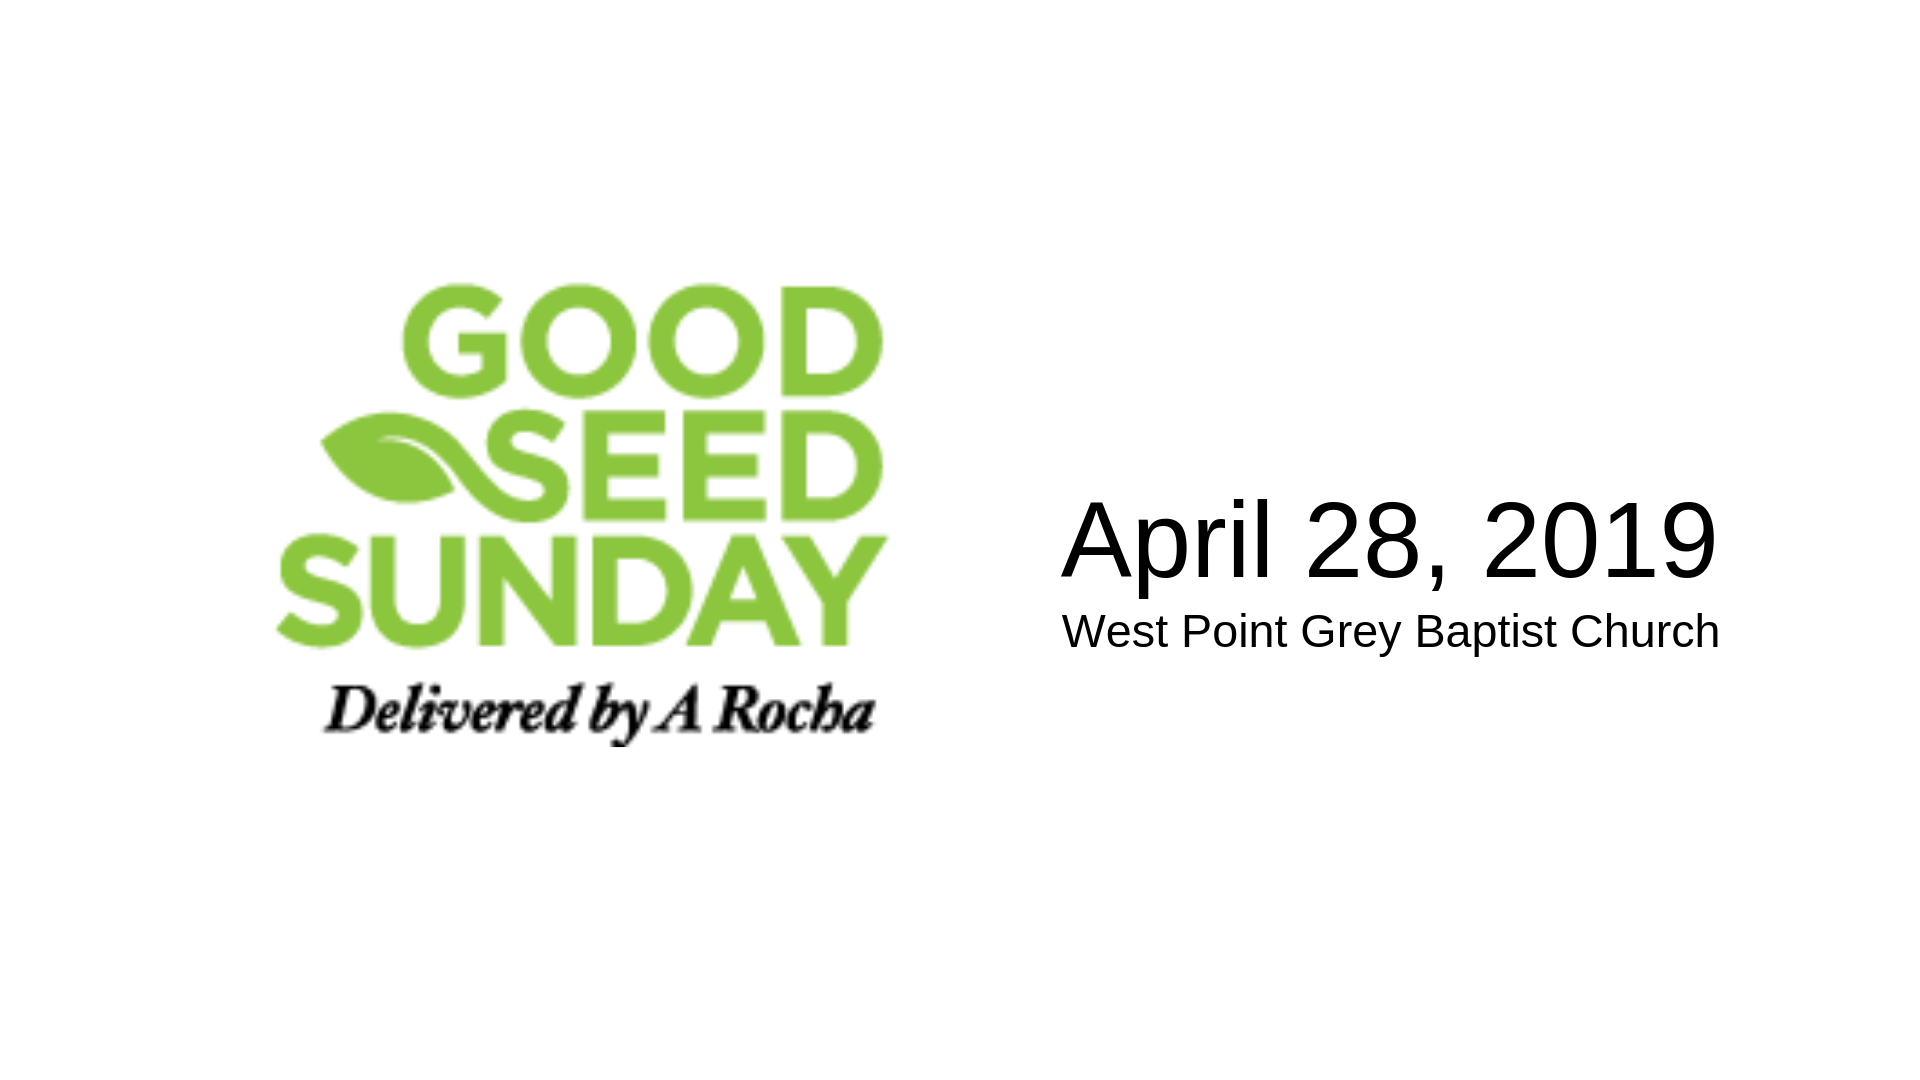 Good Seed Sunday_April 28, 2019.png